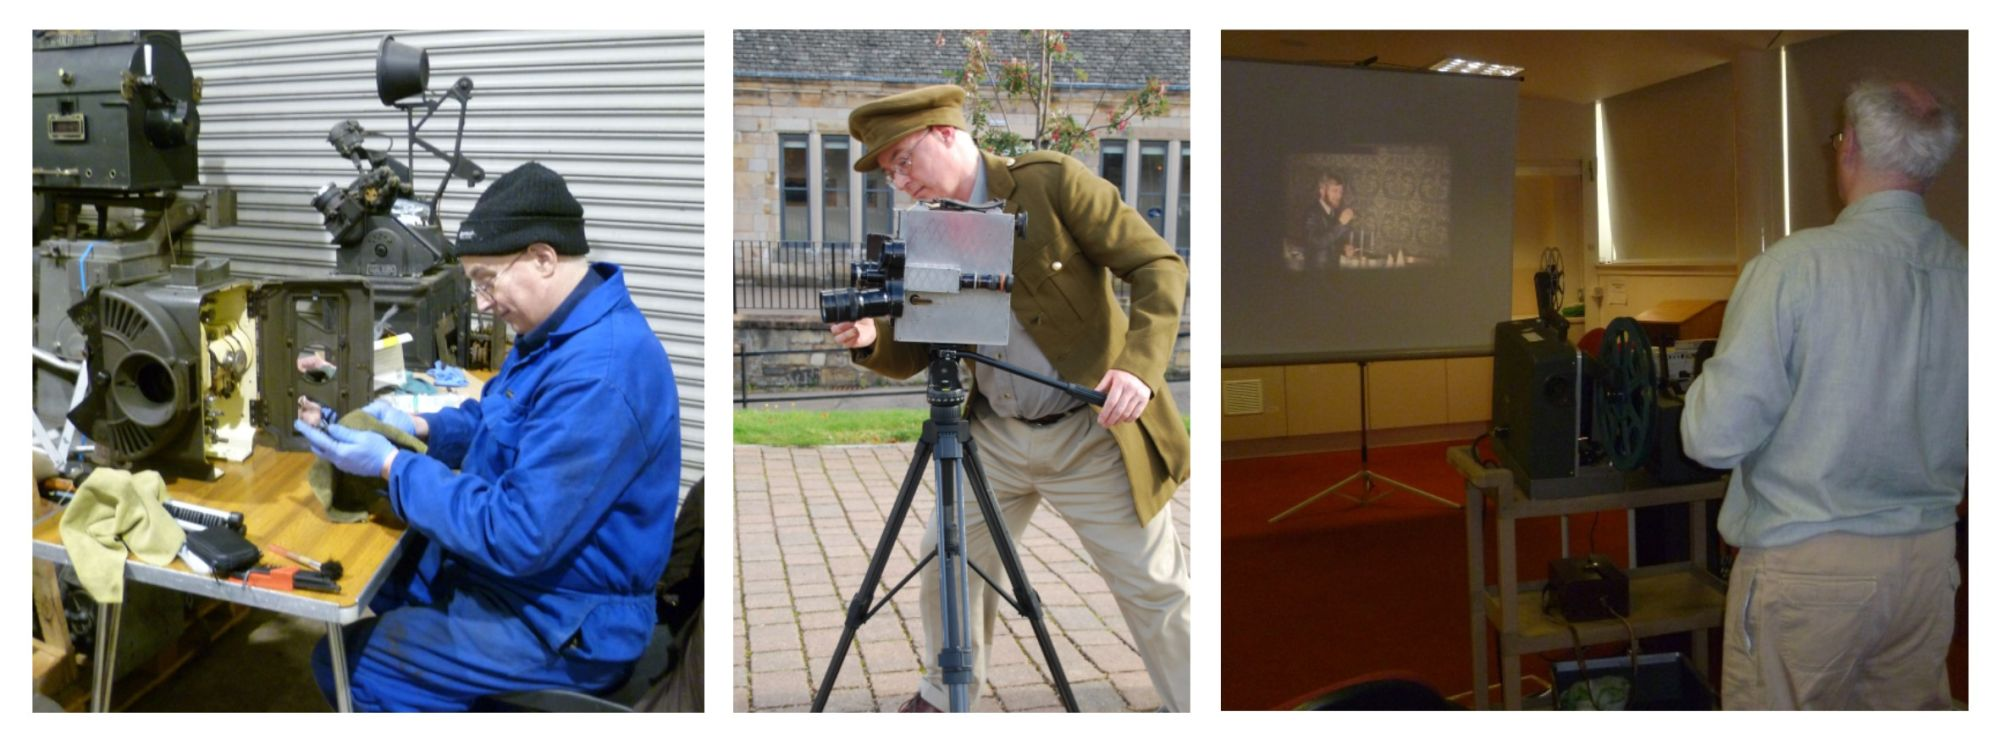 Three images of the same man (1) cleaning cinema equipment (2) filming with a vintage camera and (3) presenting a projected film show